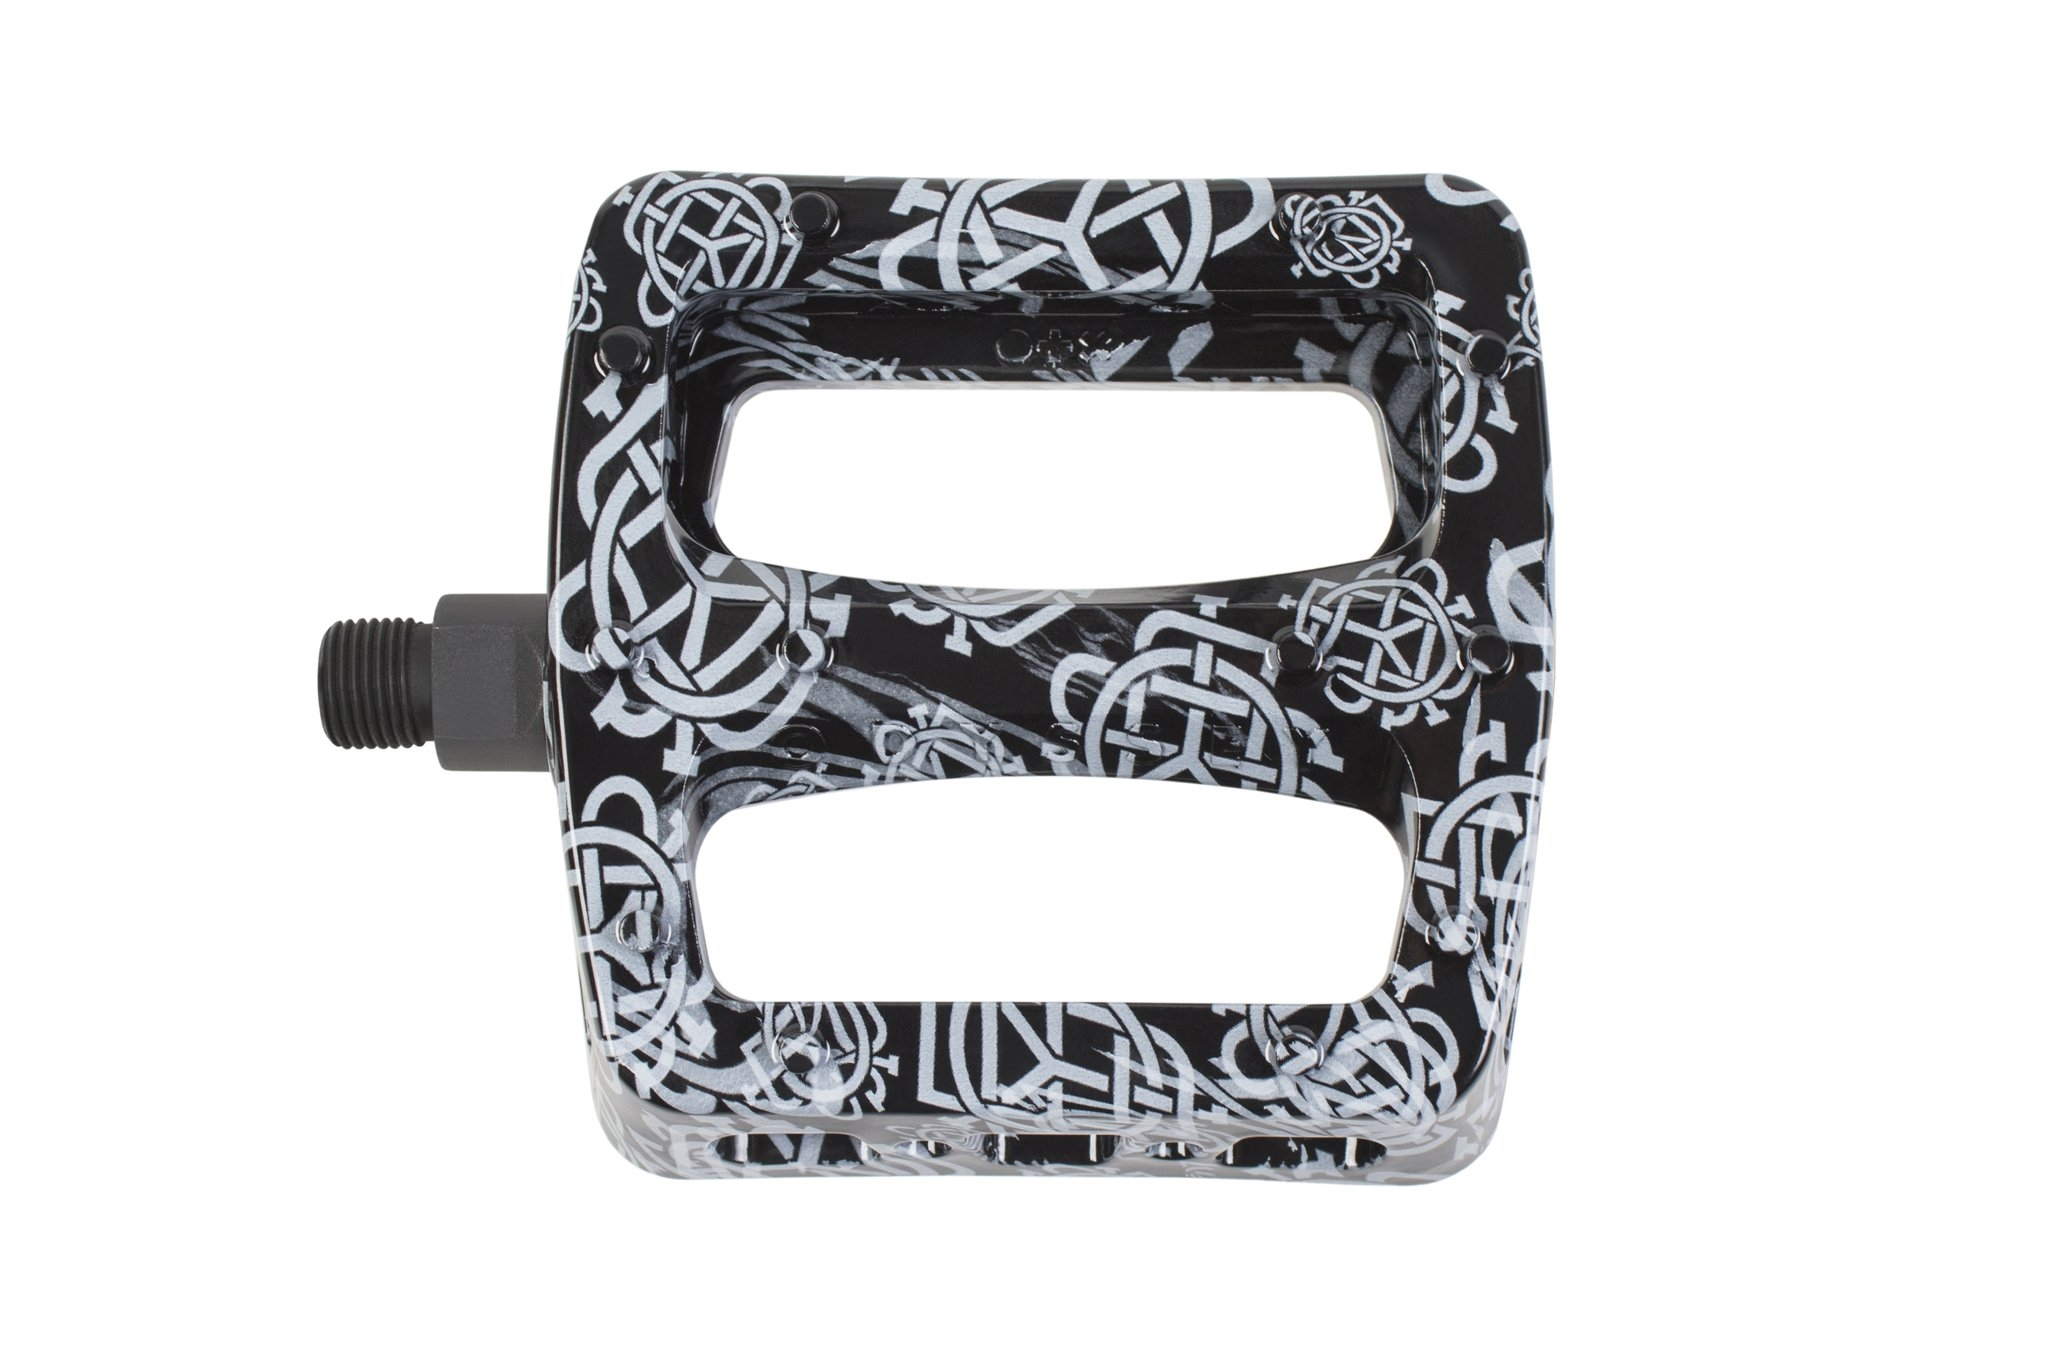 Odyssey Twisted Pro Pedali | Colore Monogram Pattern Black